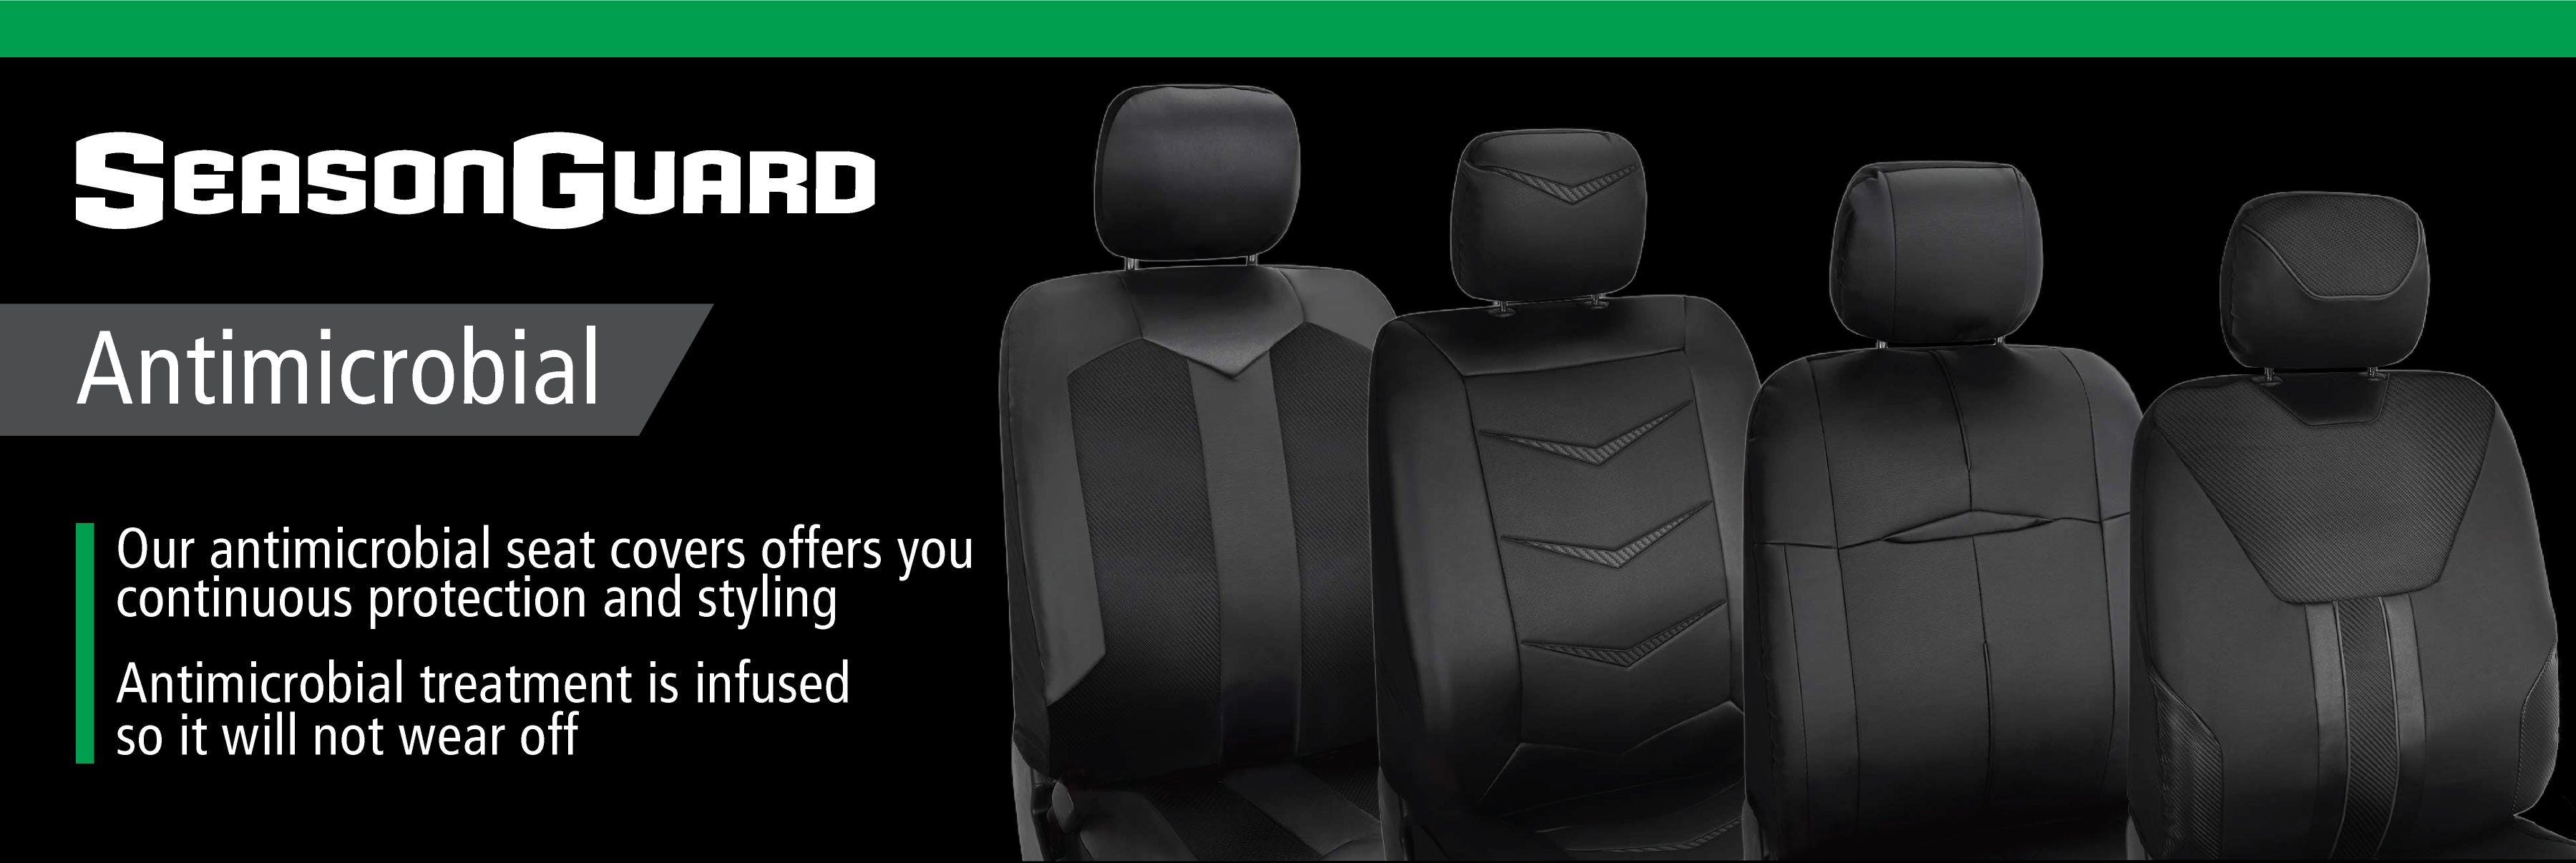 Auto Accessories, Car Accessories, Truck Accessories, Seat cover, Floor Mat, Steering Wheel Cover, Car Cover, for Car, Suv, Van & Trucks